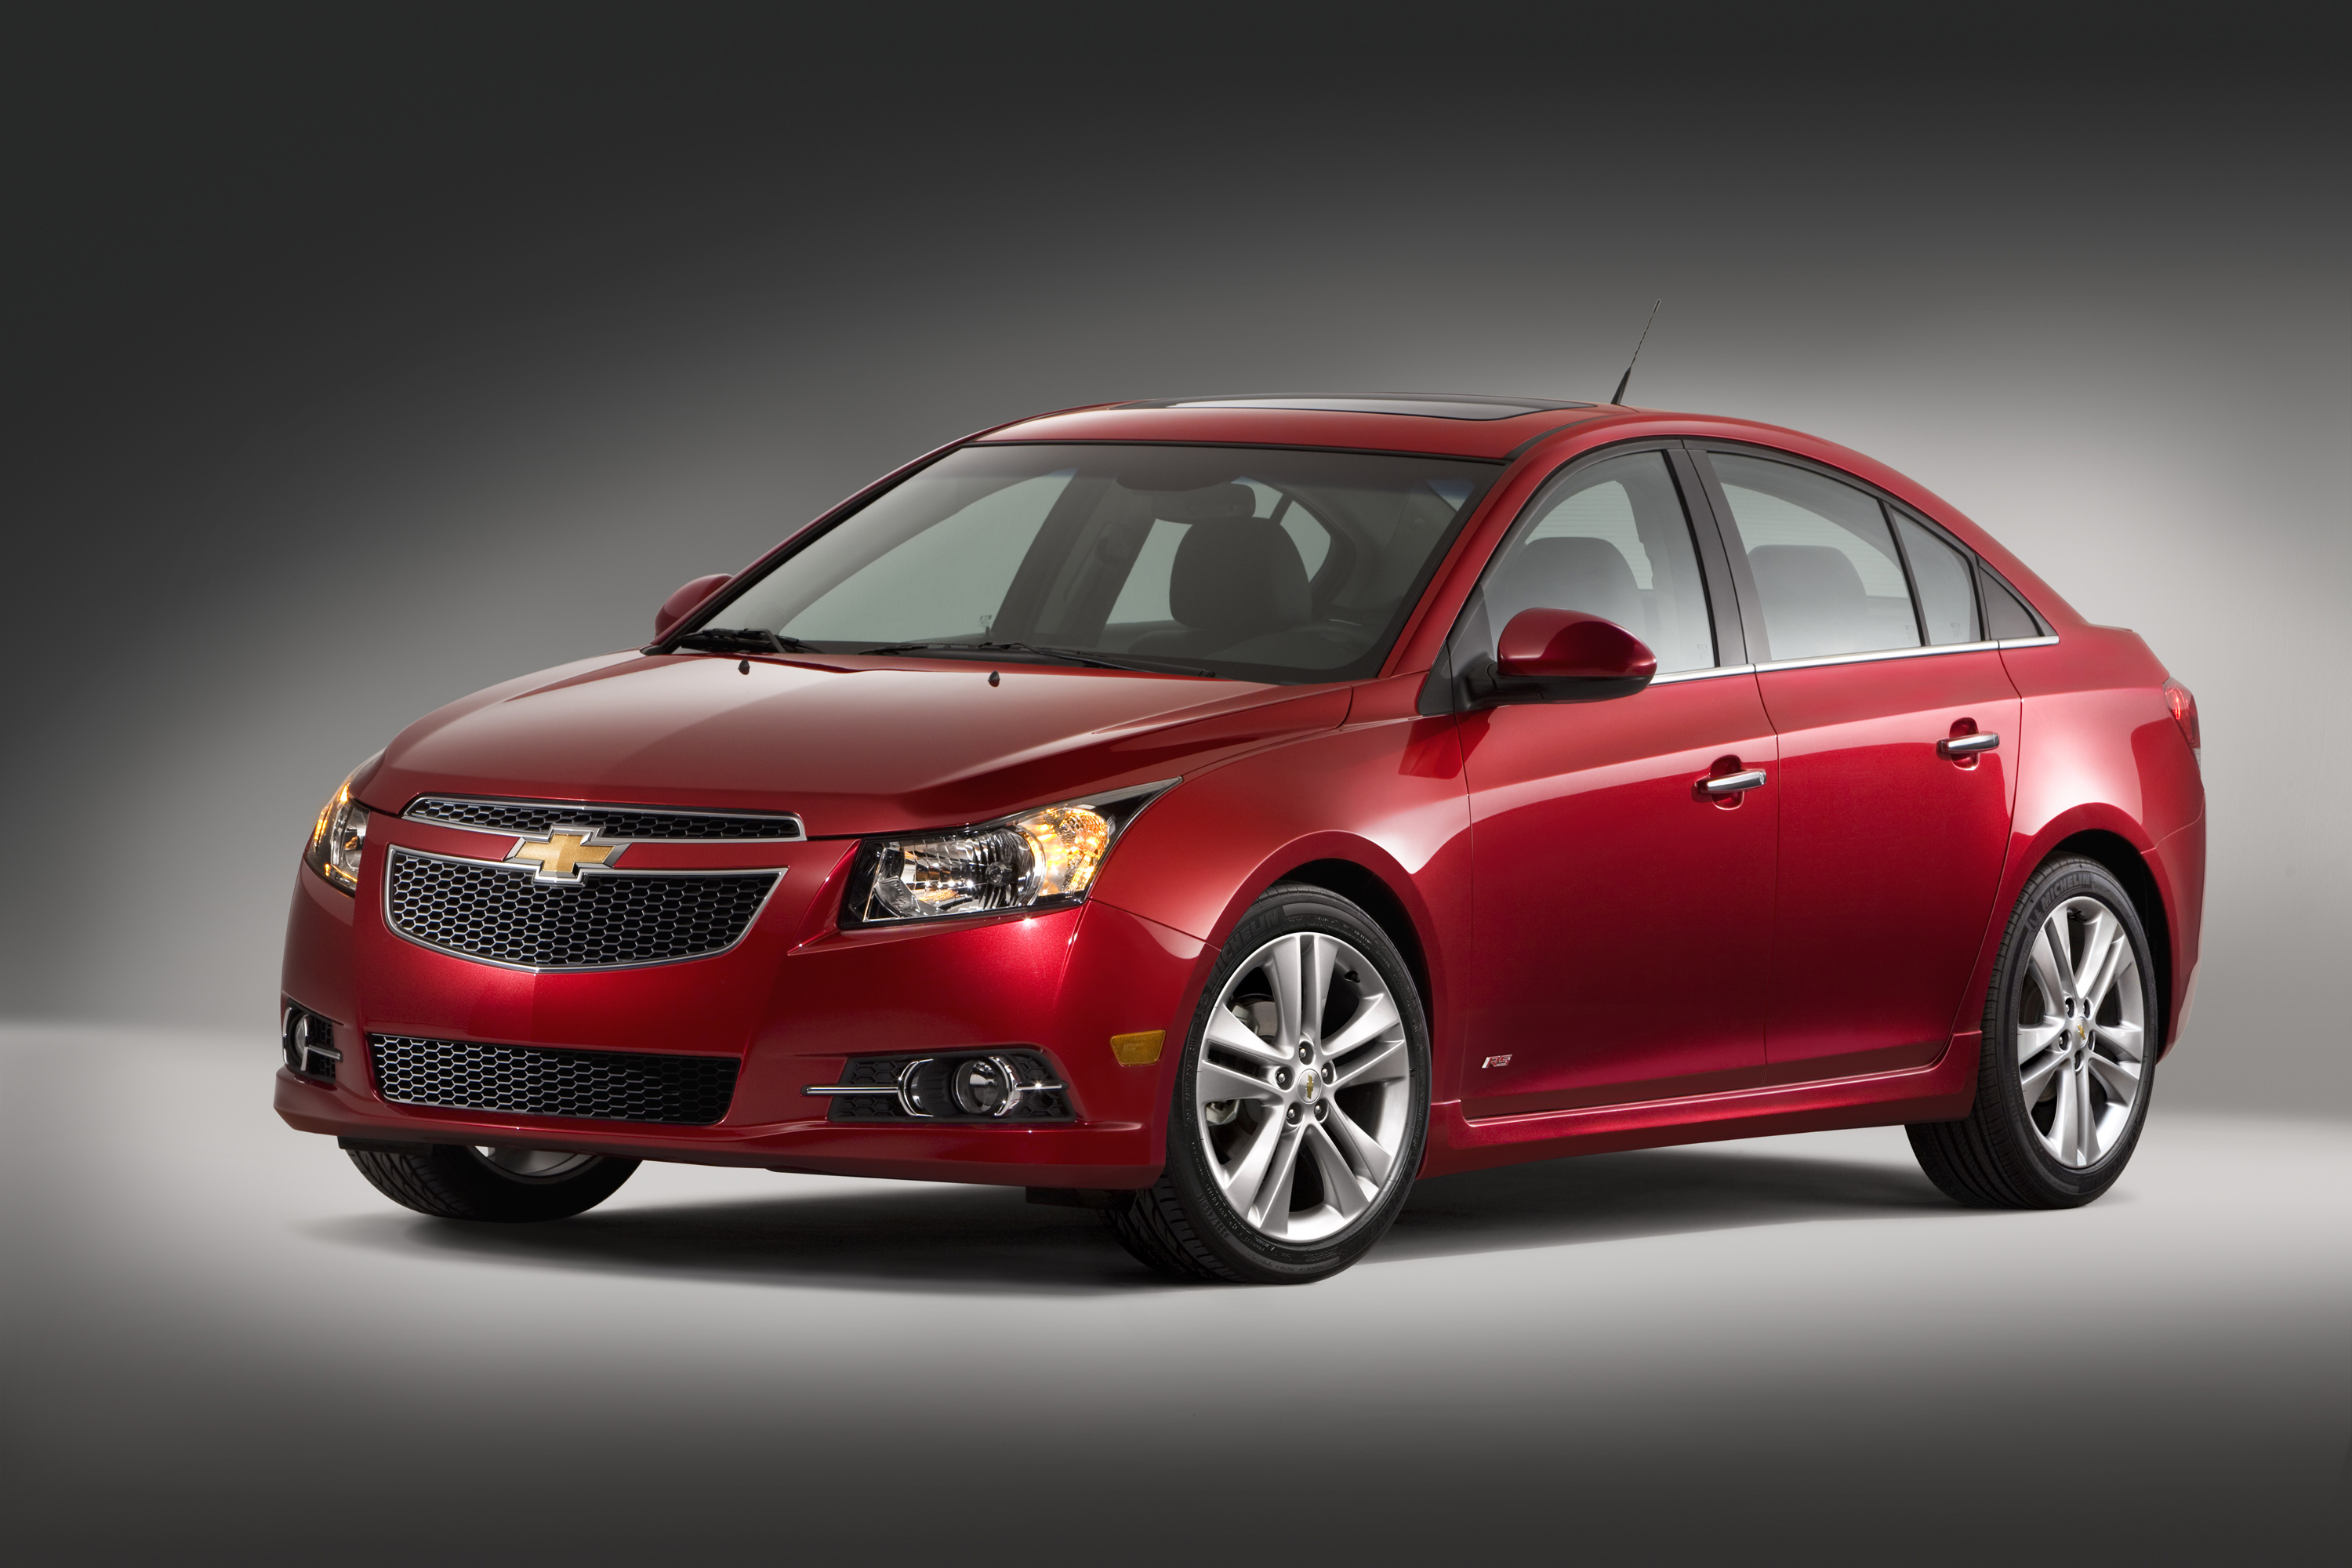 l cruze diesel created vw driving with over says review rapha torquey move road car reviews chevrolet test